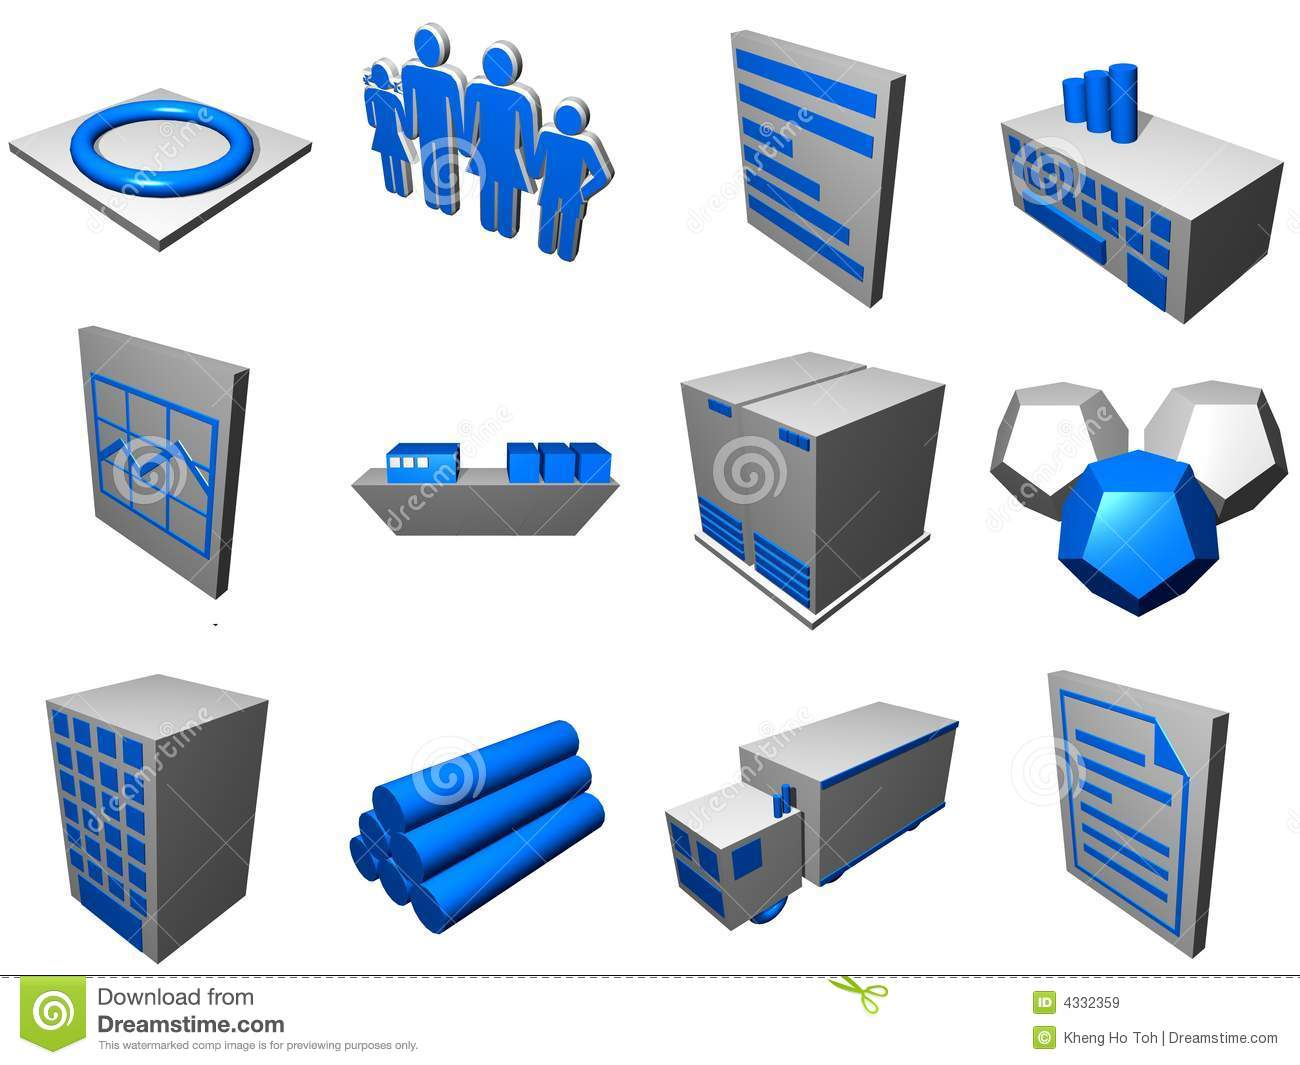 Logistics process icons for supply chain diagram stock illustration logistics process icons for supply chain diagram ccuart Choice Image